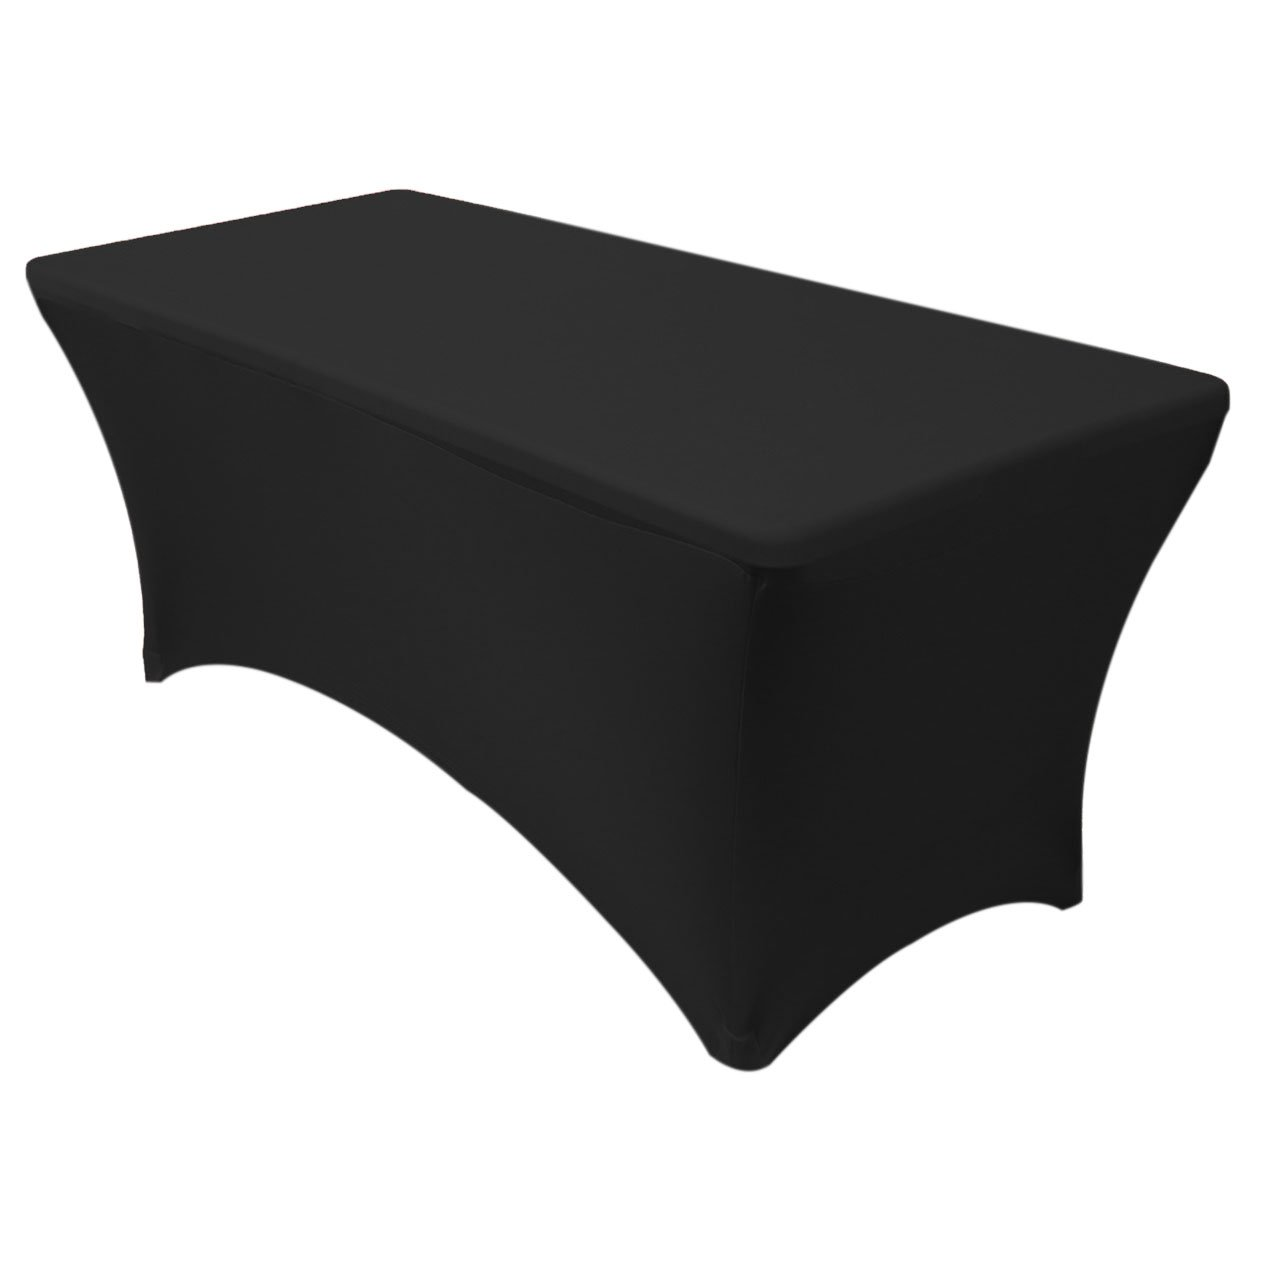 Your Chair Covers - Stretch Spandex Table Cover for 6 Ft Rectangular Tables, 72'' Length x 30'' Width x 30'' Height Fitted Tablecloth for Standard Folding Tables - Black